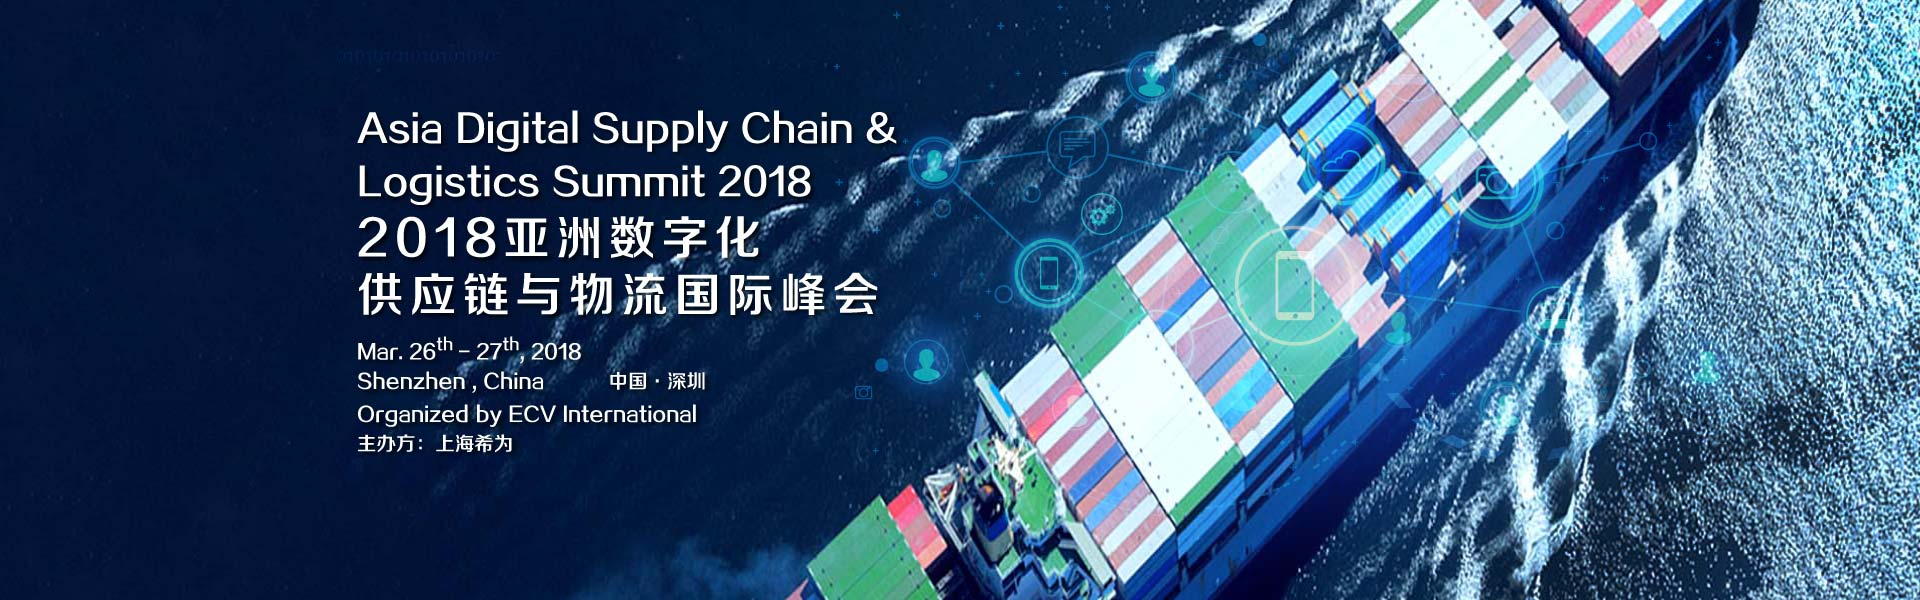 Asia Digital Supply Chain & Logistics Summit 2018